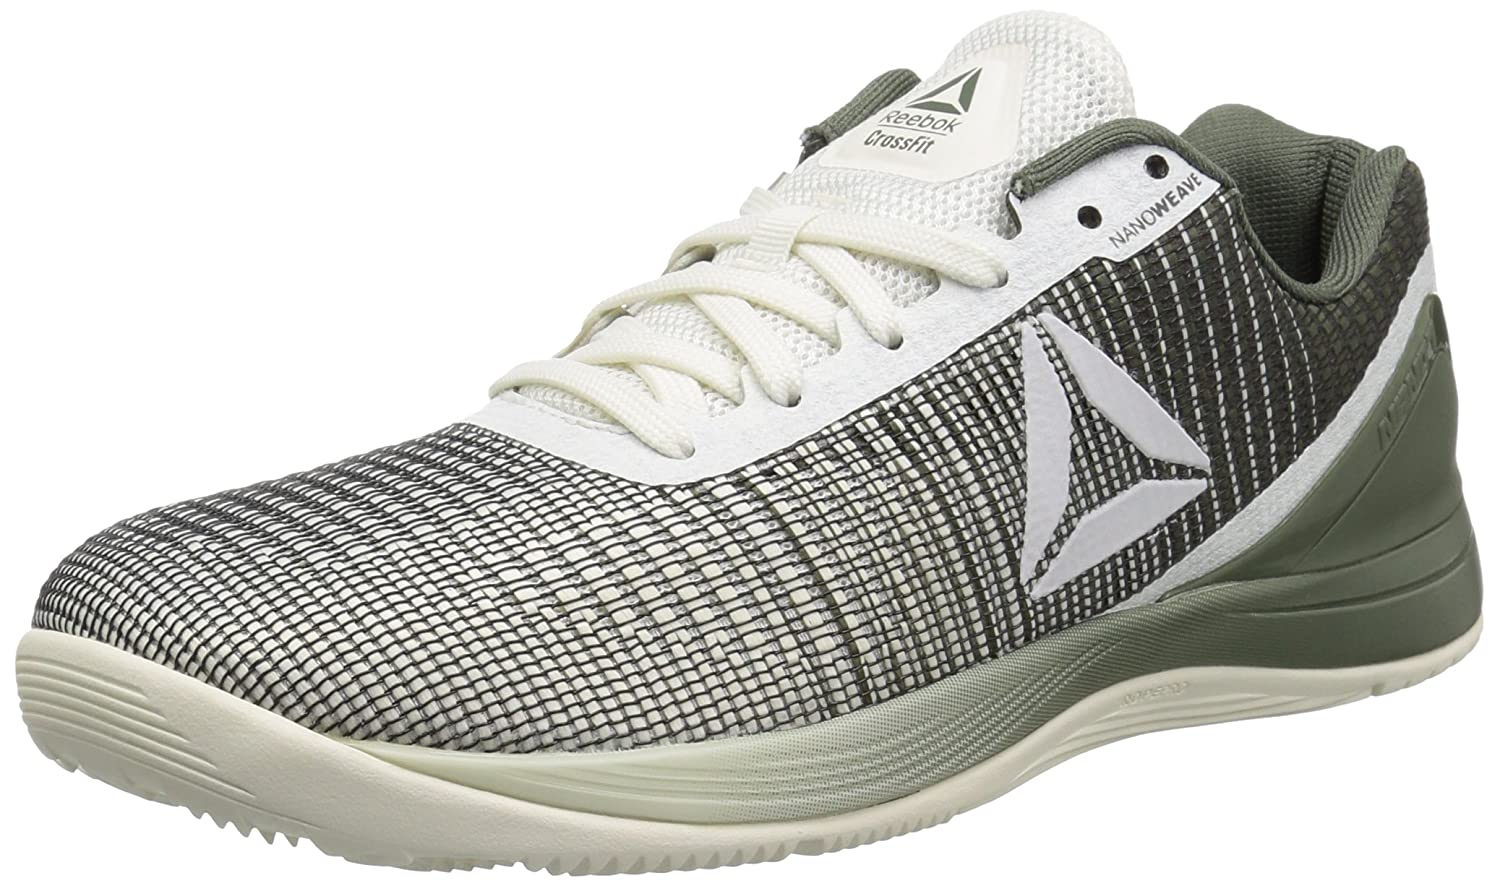 Reebok Women's Crossfit Nano 7.0 Track Shoe B072L1CJ7K 9 B(M) US|Women's Chalk/Hunter Green